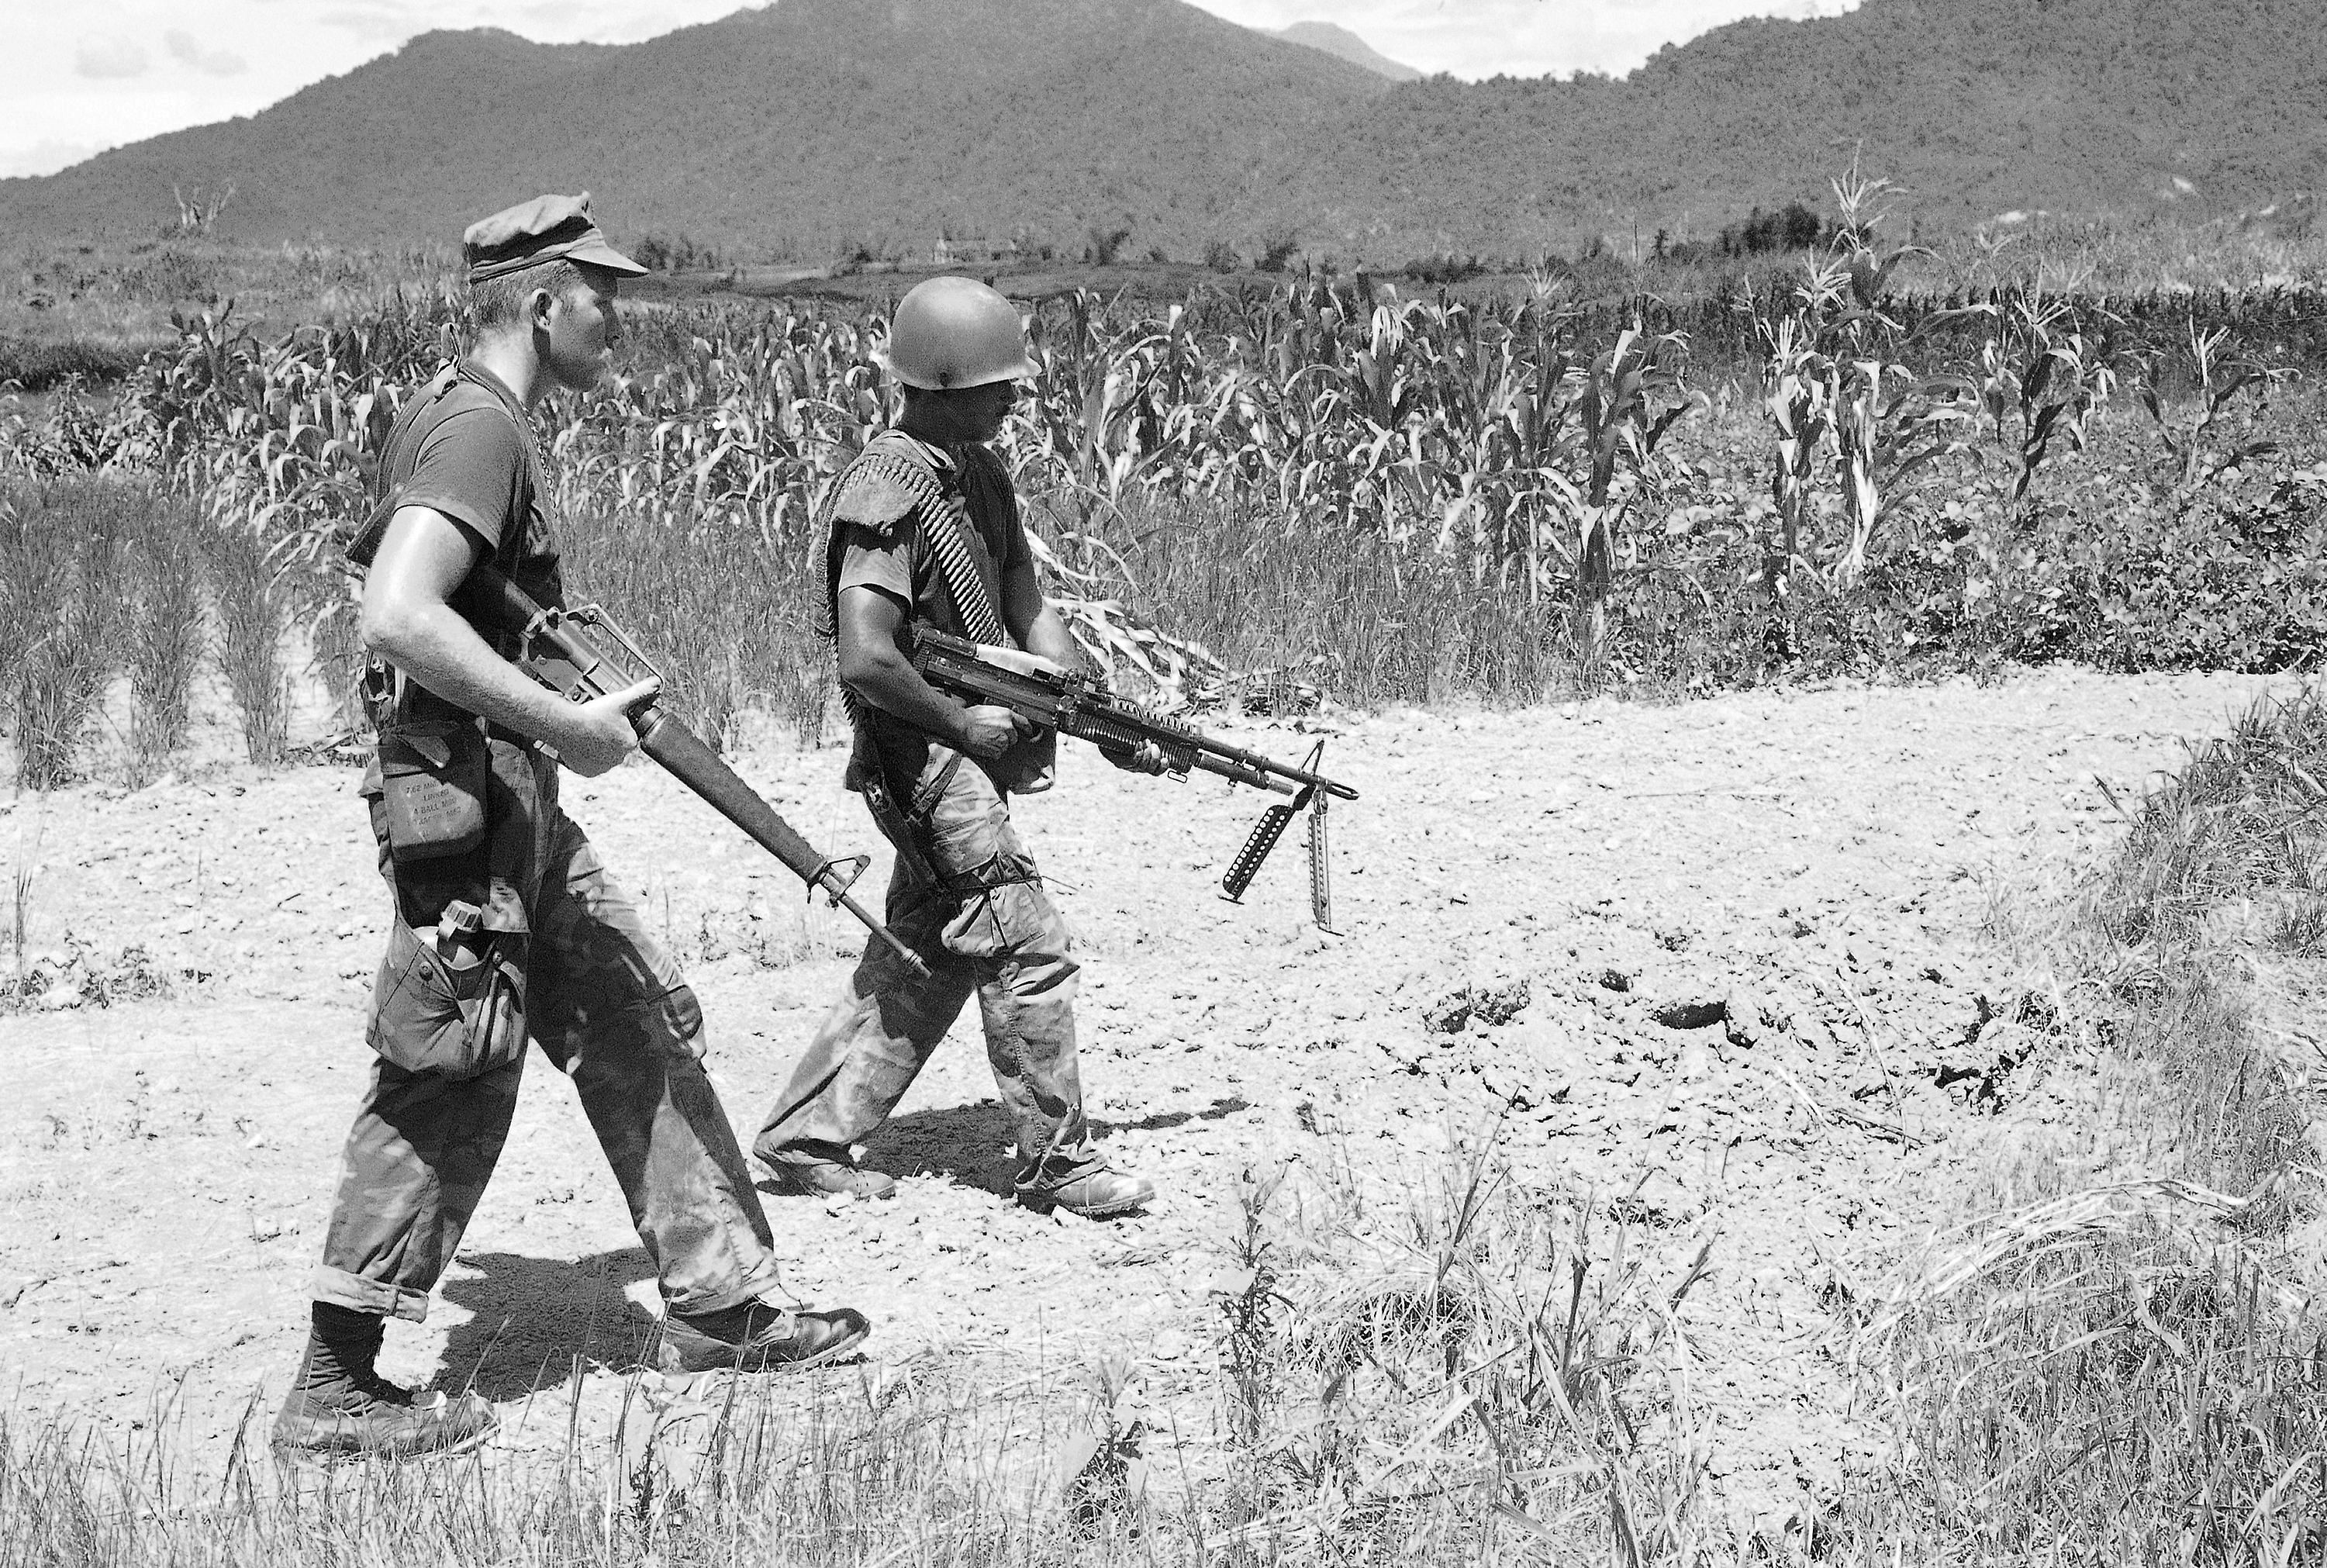 Troops exposed to Agent Orange outside of Vietnam could be in line for presumptive benefits